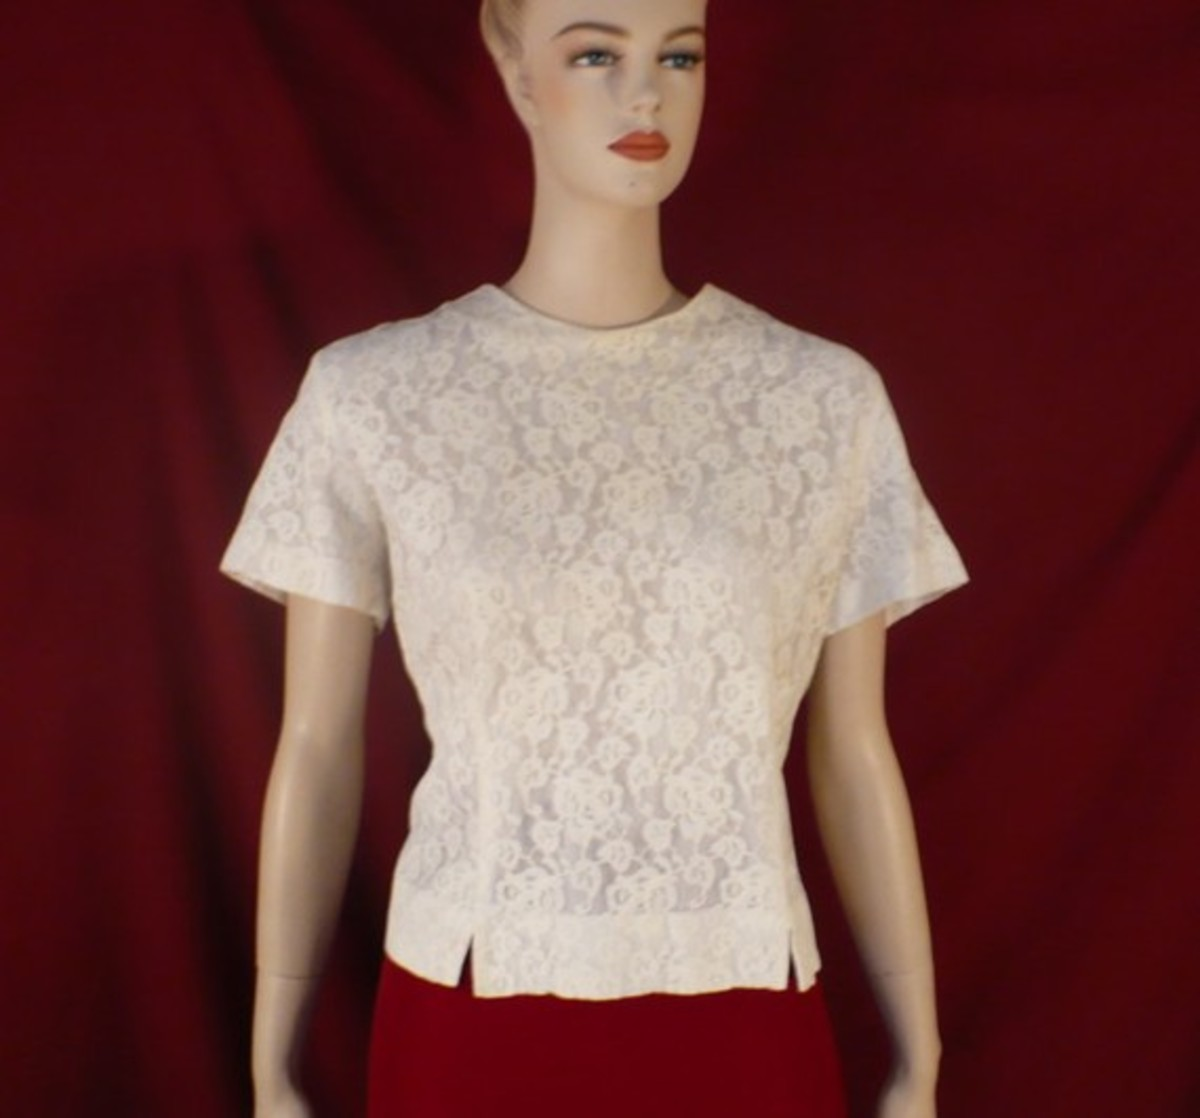 Vintage White Lace Blouse from the '40s.  For Sale on Etsy.